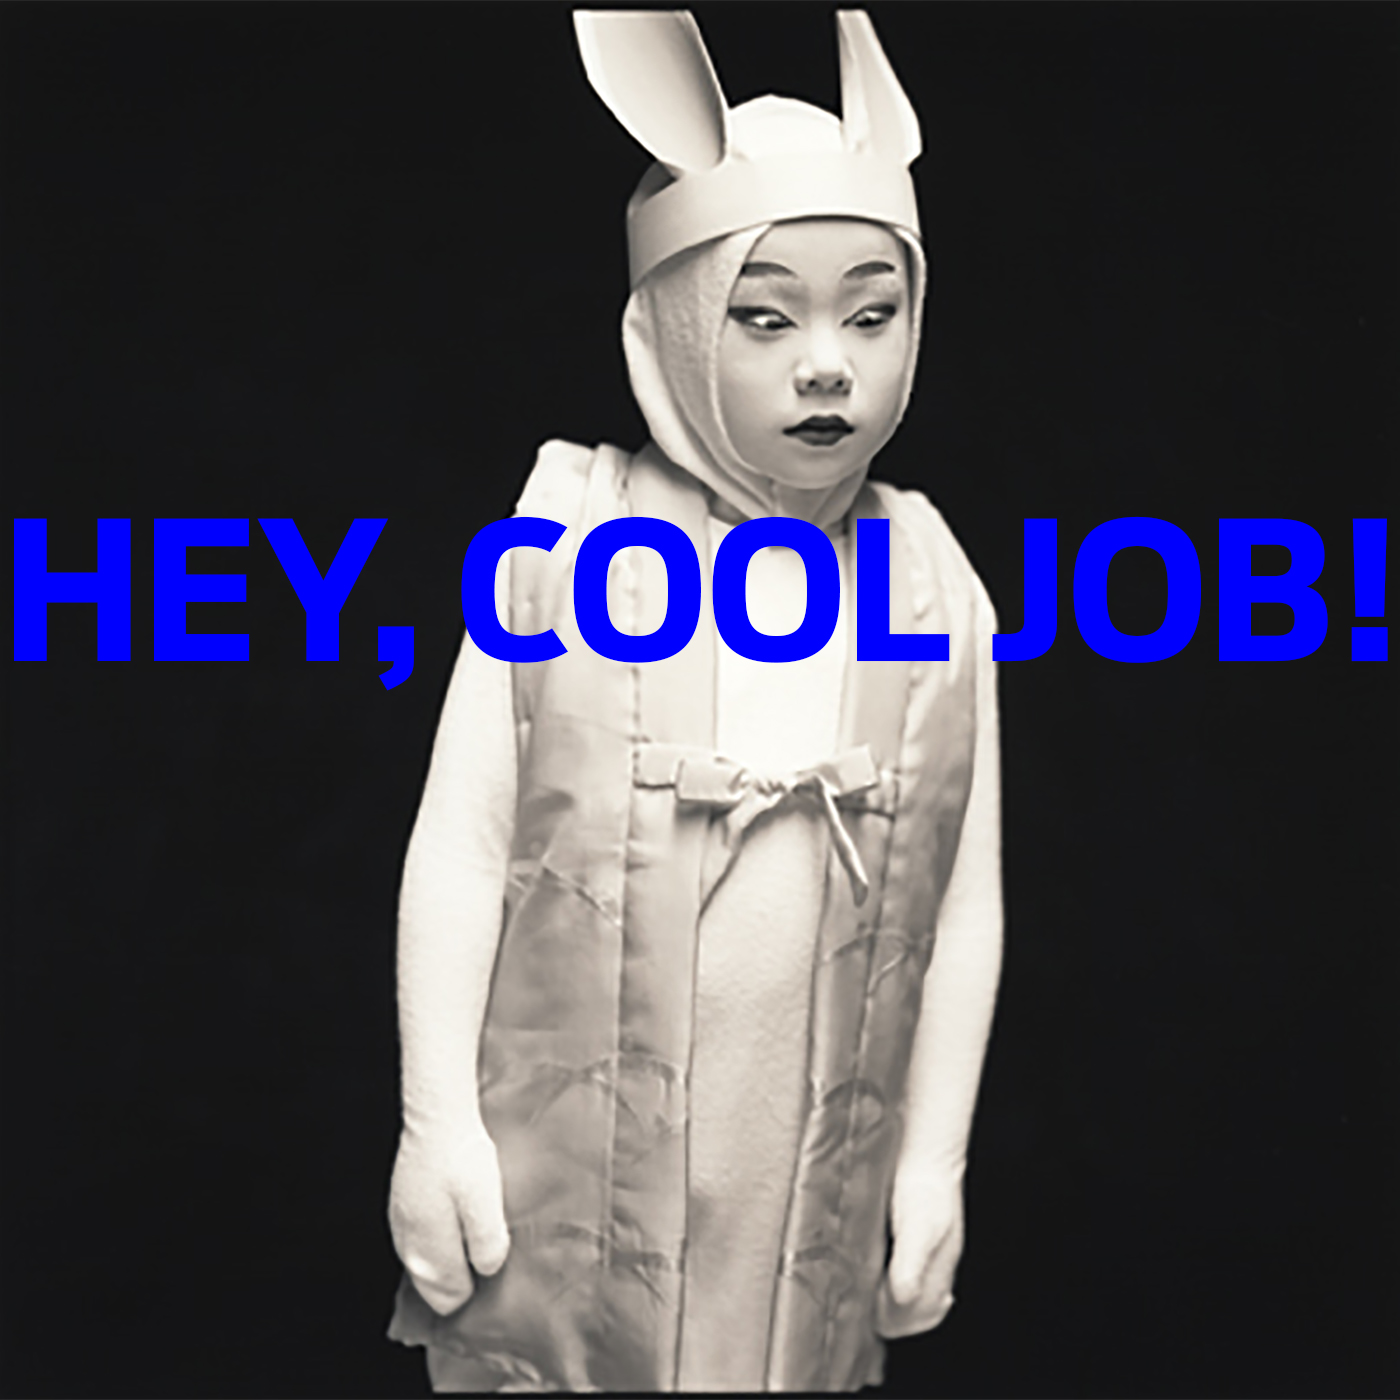 Image result for hey cool job podcast